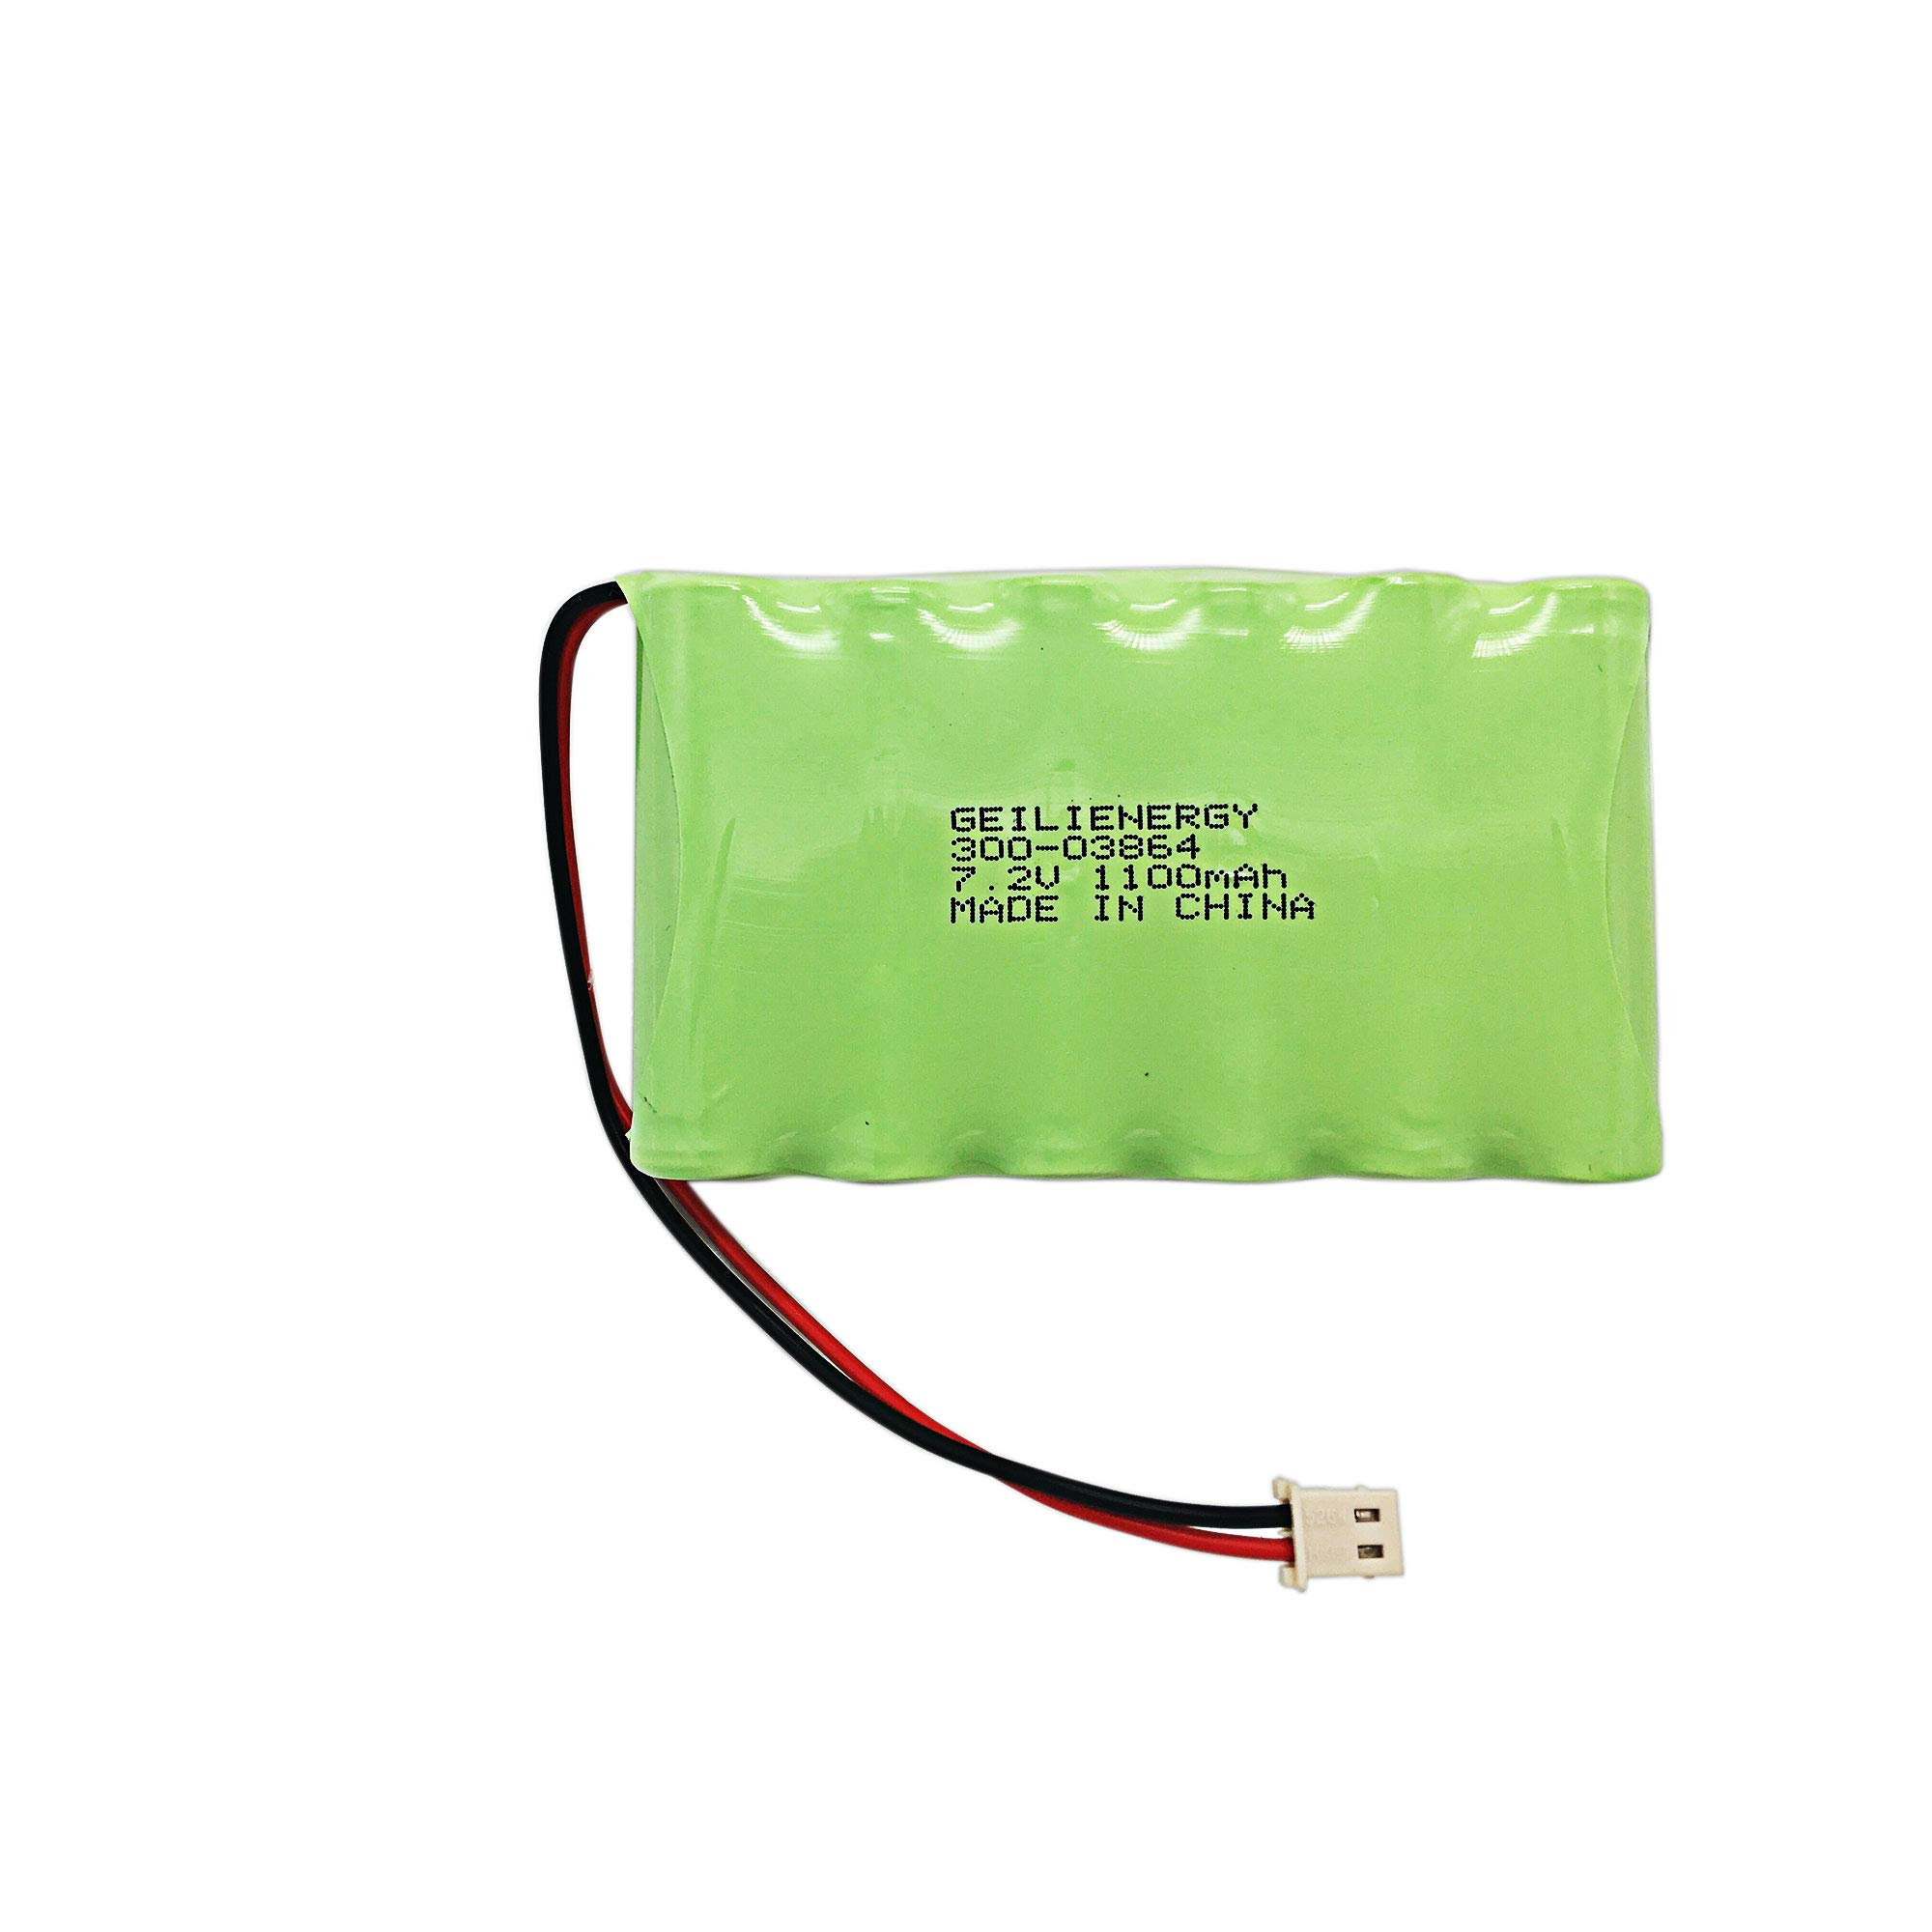 GEILIENERGY 300-03864-1 1100mAh Backup Battery for ADT ADI Ademco Lynx WALYNX-RCHB-SC Honeywell Lynx Touch K5109, L3000, L5000, L5100 by GEILIENERGY